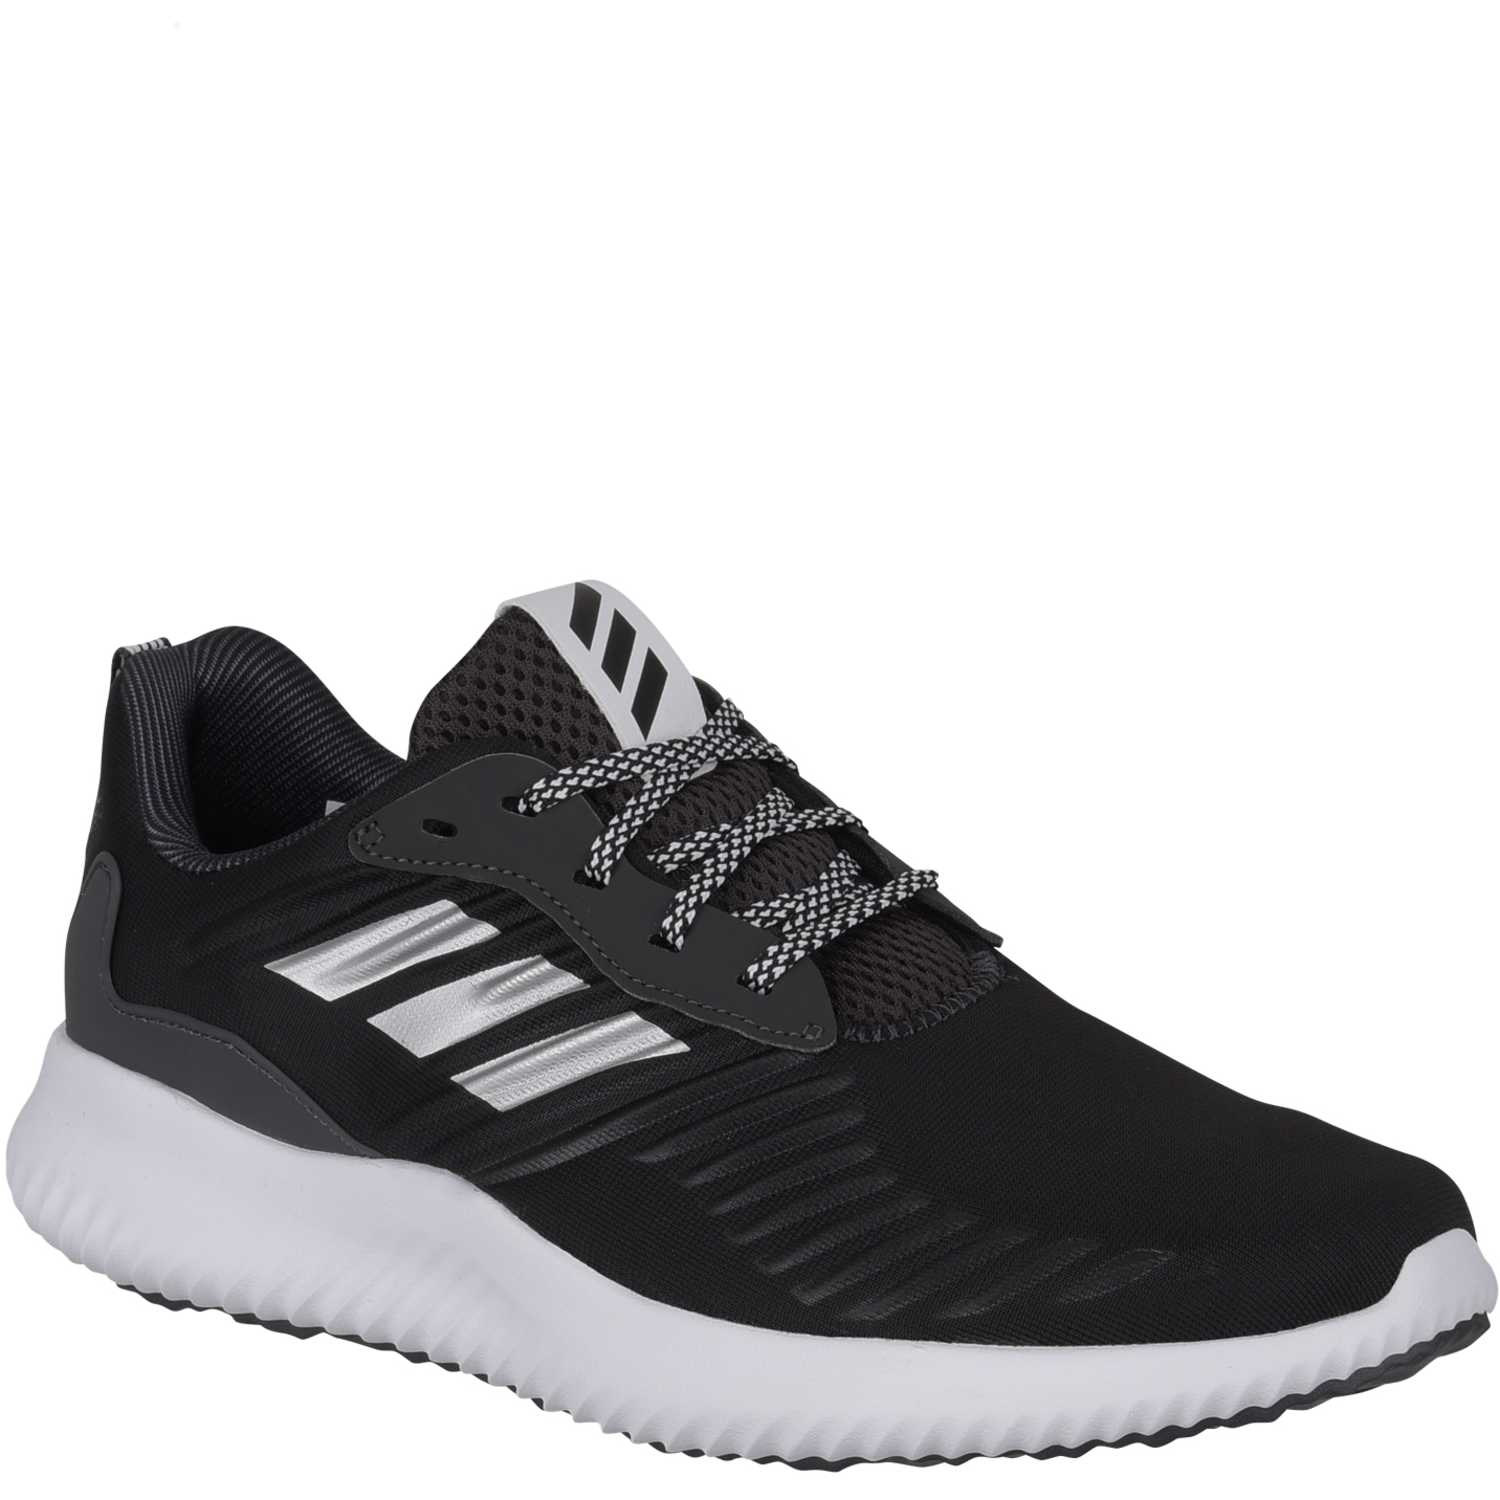 100% authentic 35765 db785 Zapatilla de Hombre adidas Negro  Blanco alphabounce rc m